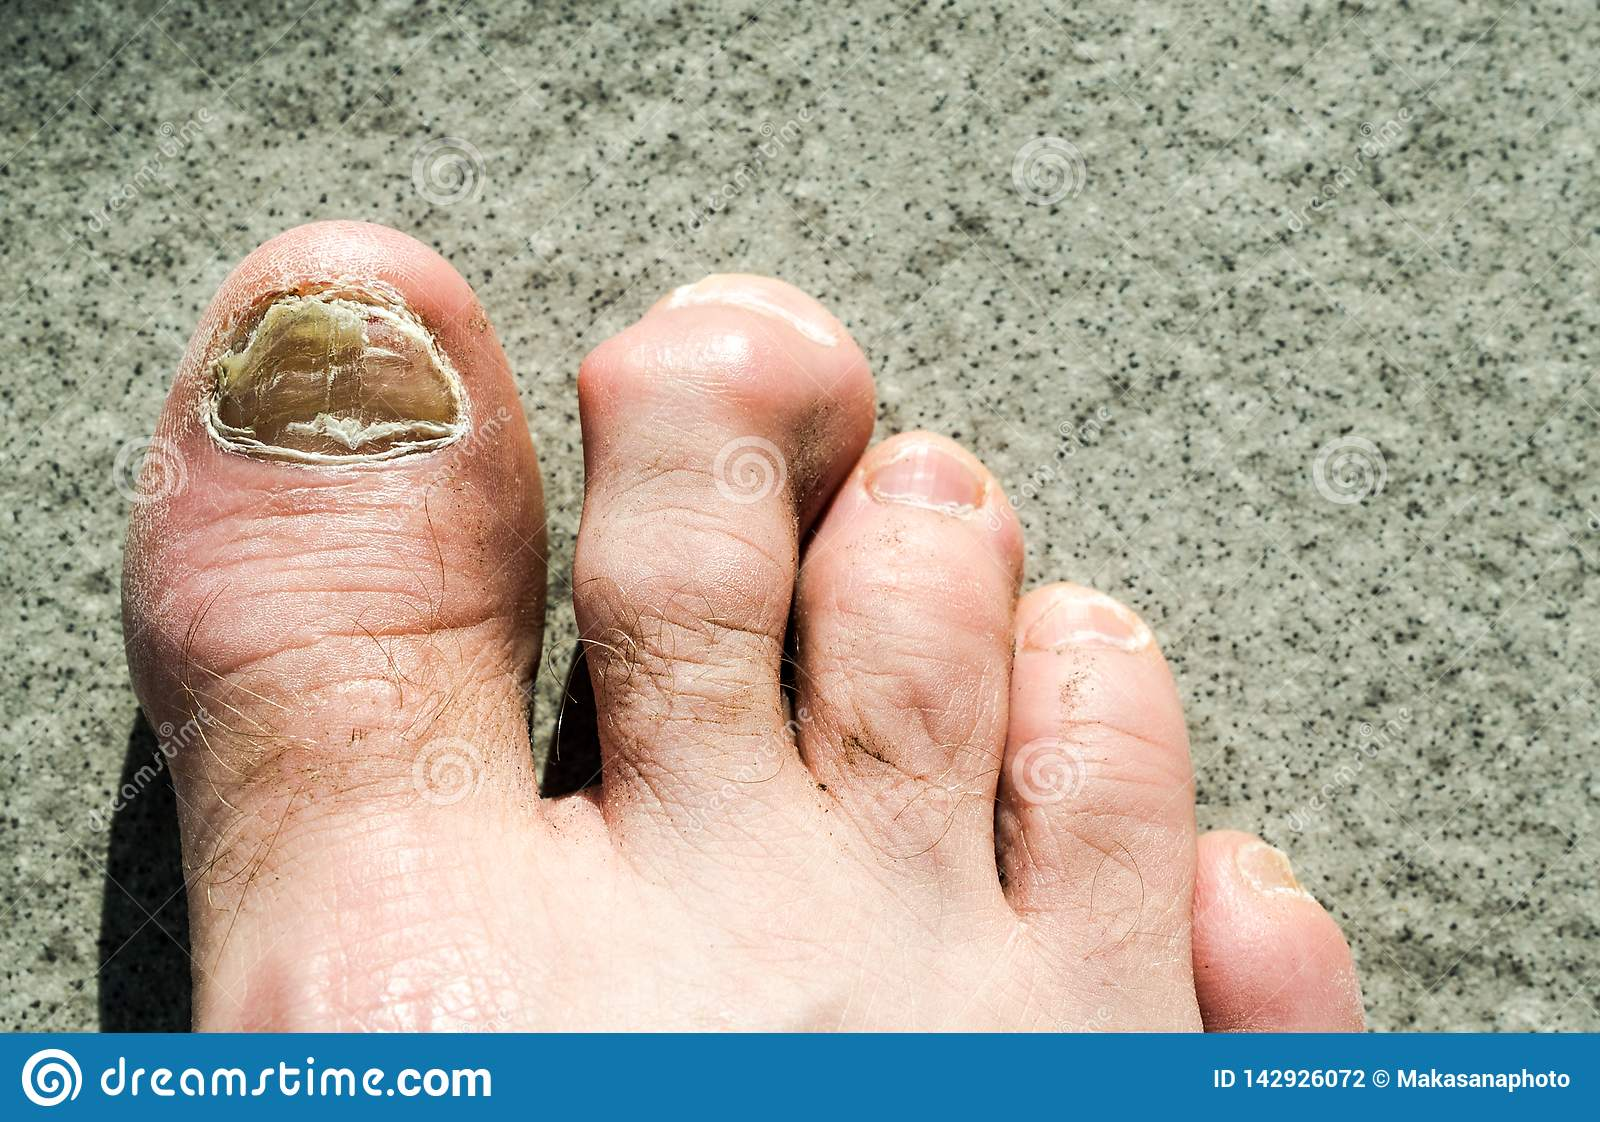 30bd91963 Ugly Feet Stock Images - Download 539 Royalty Free Photos